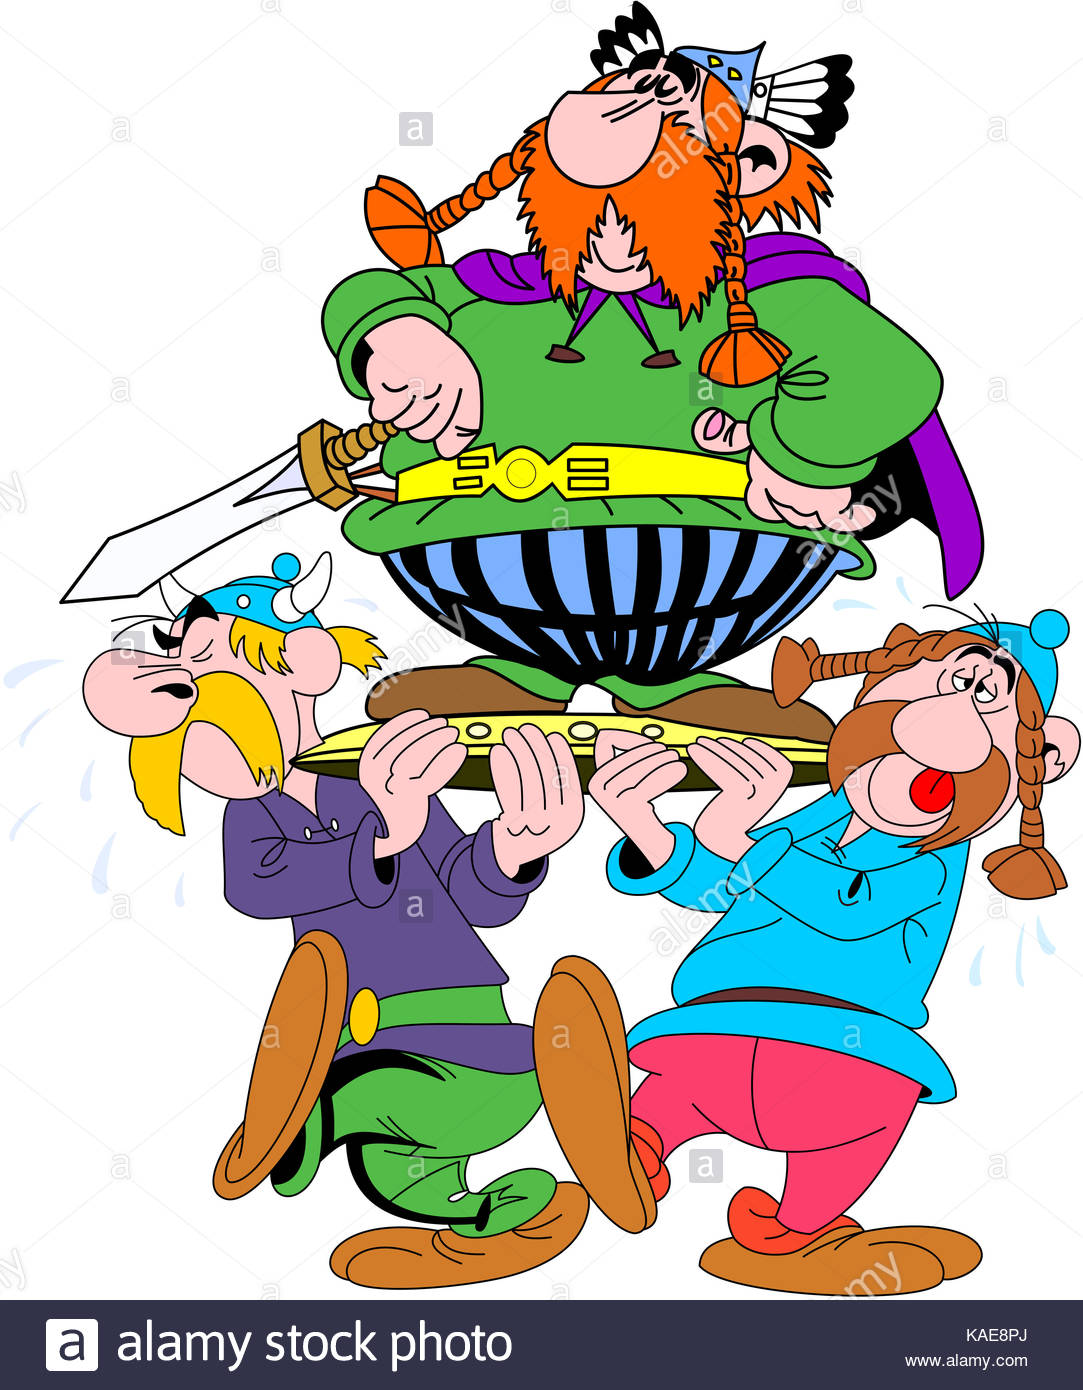 Asterix illustration french entertainment comedy abraracourcix stock asterix illustration french entertainment comedy abraracourcix altavistaventures Gallery